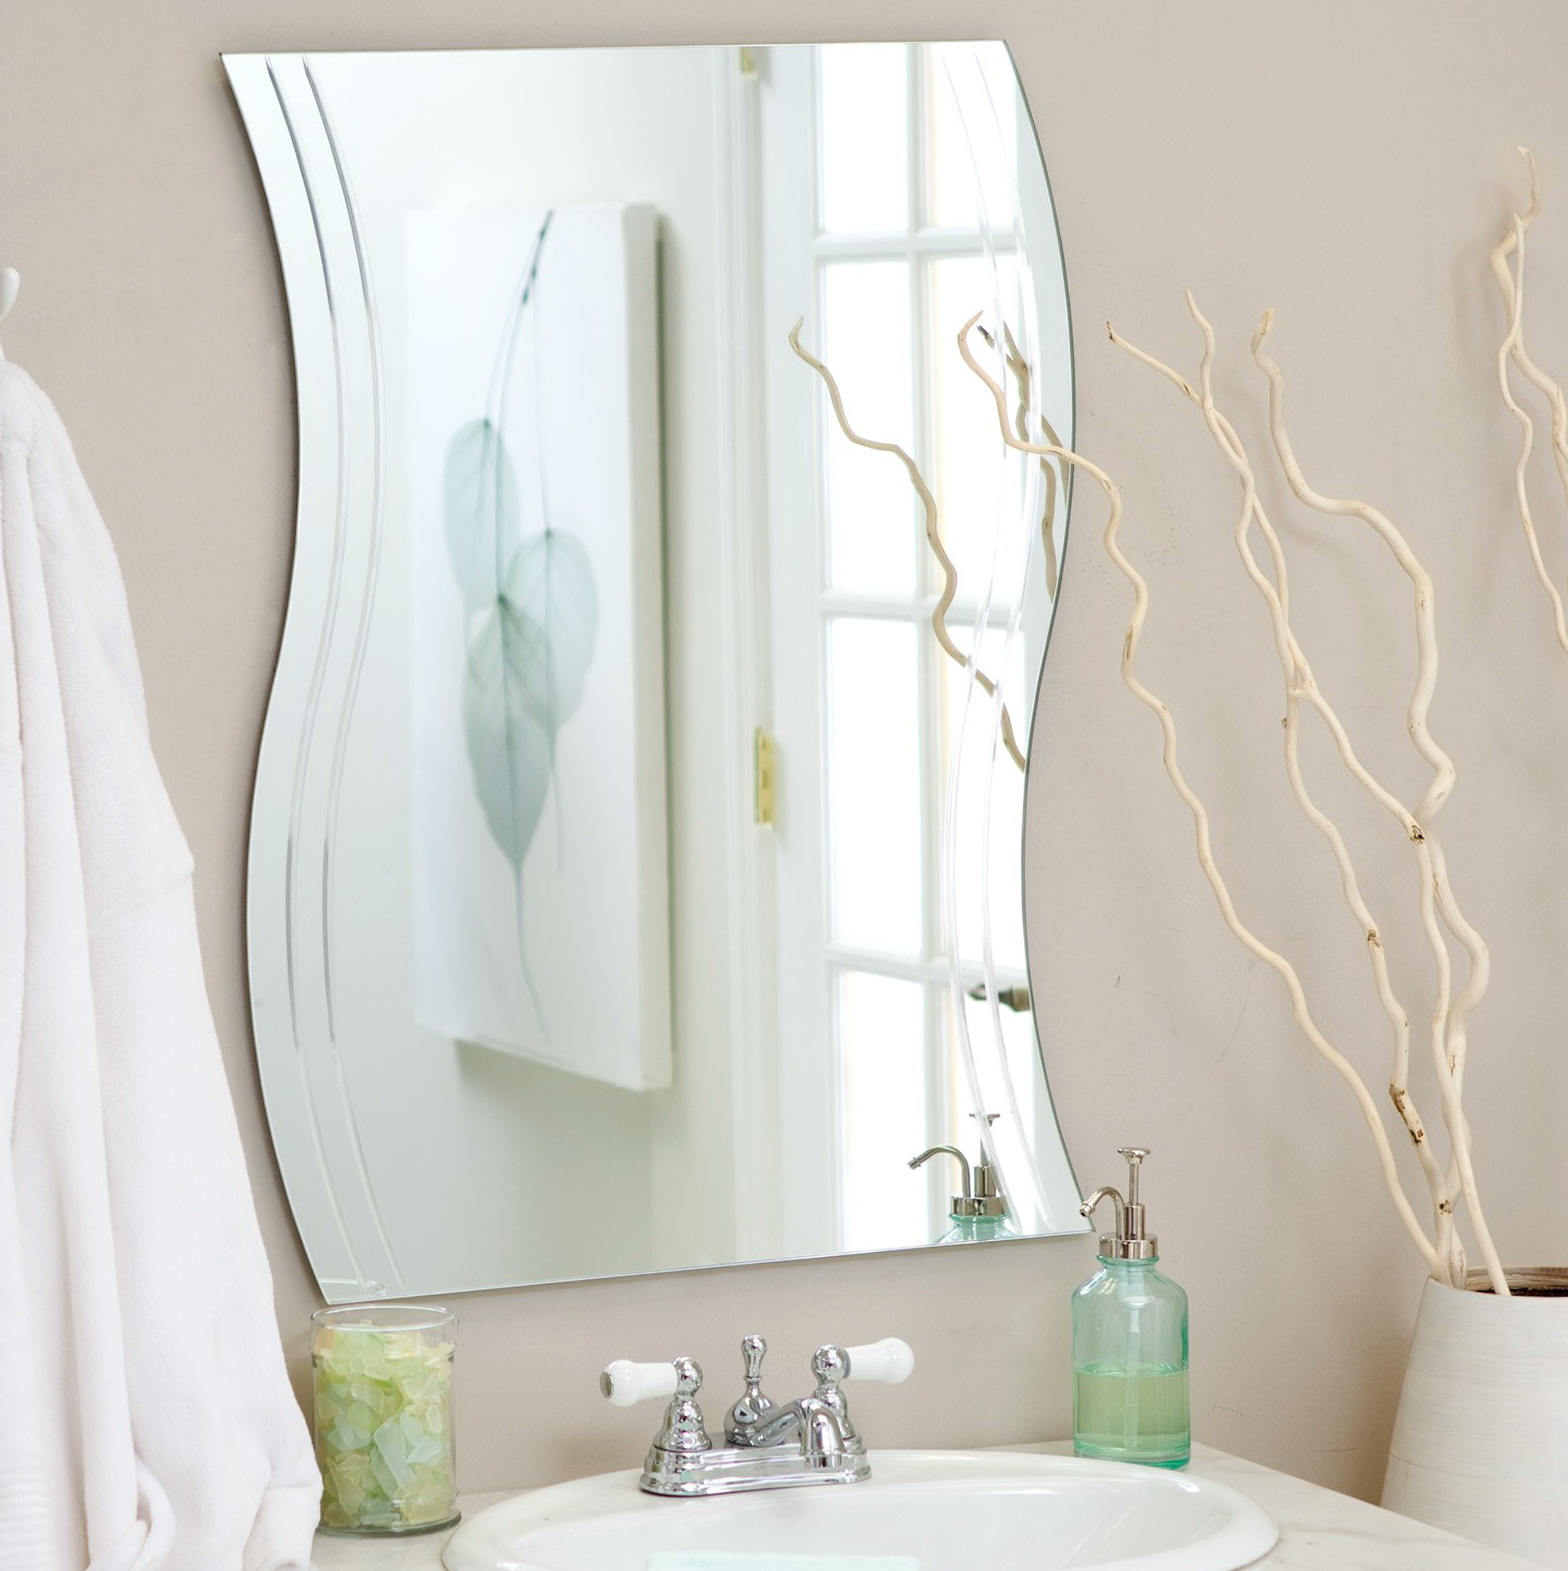 Do It Yourself Home Design: Frameless Wall Mirror Mounting Brackets